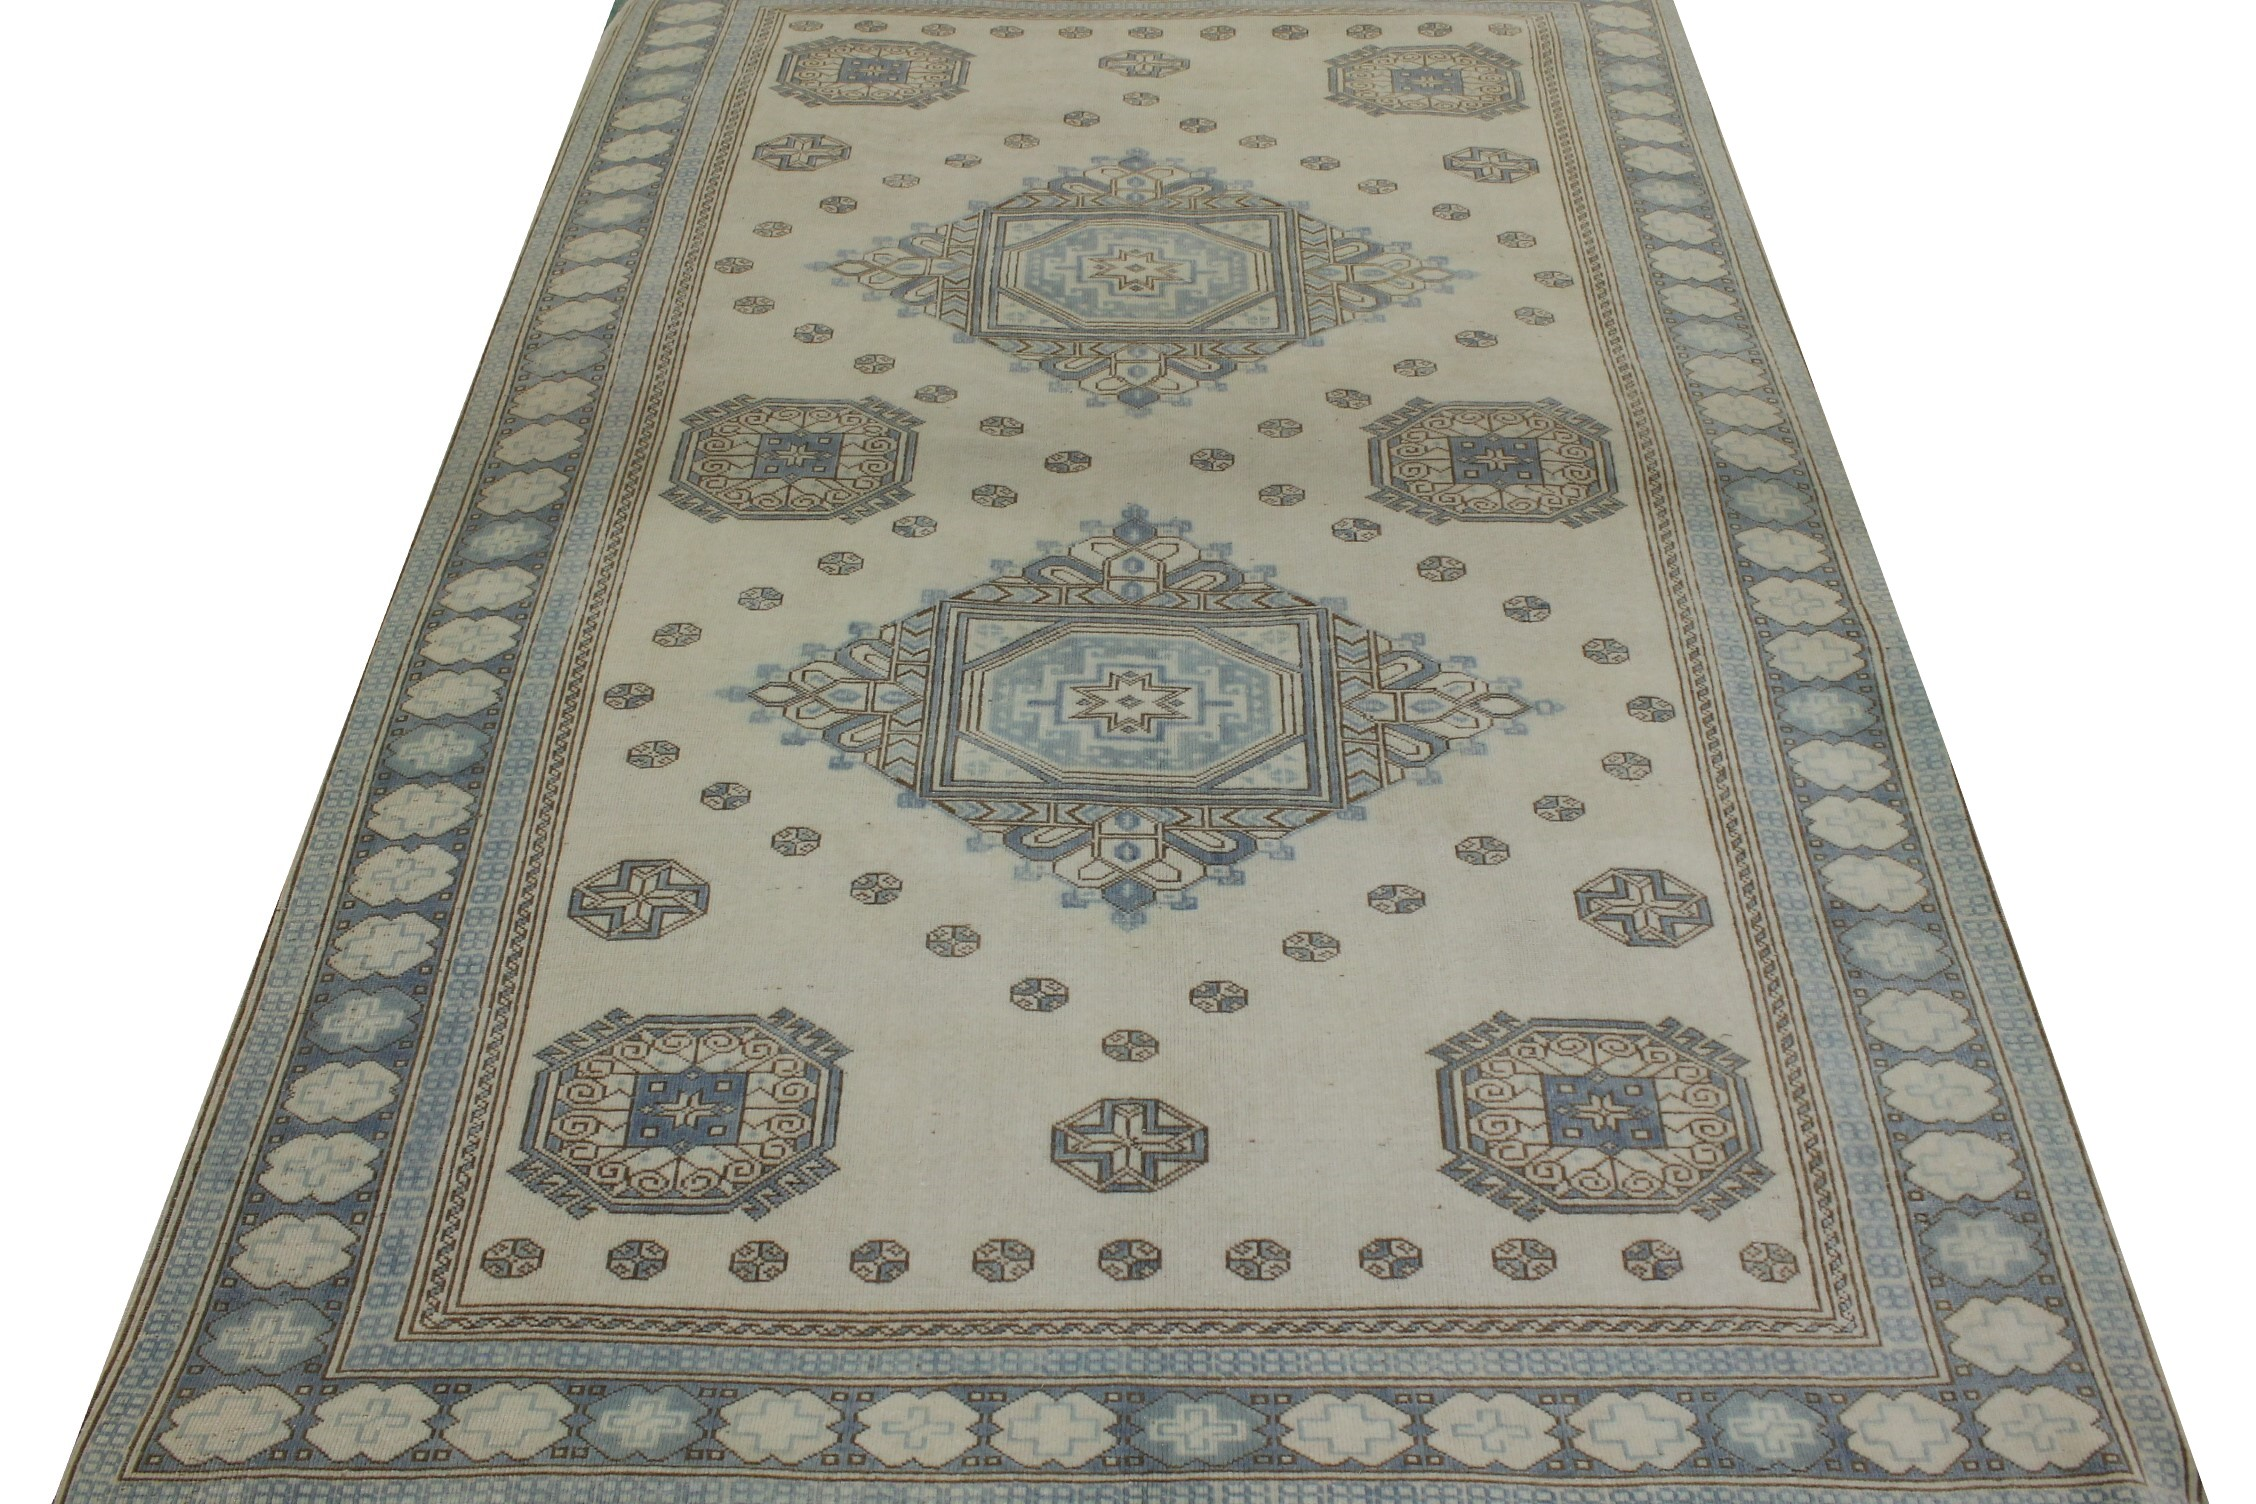 6x9 Oushak Hand Knotted Wool Area Rug - MR023469